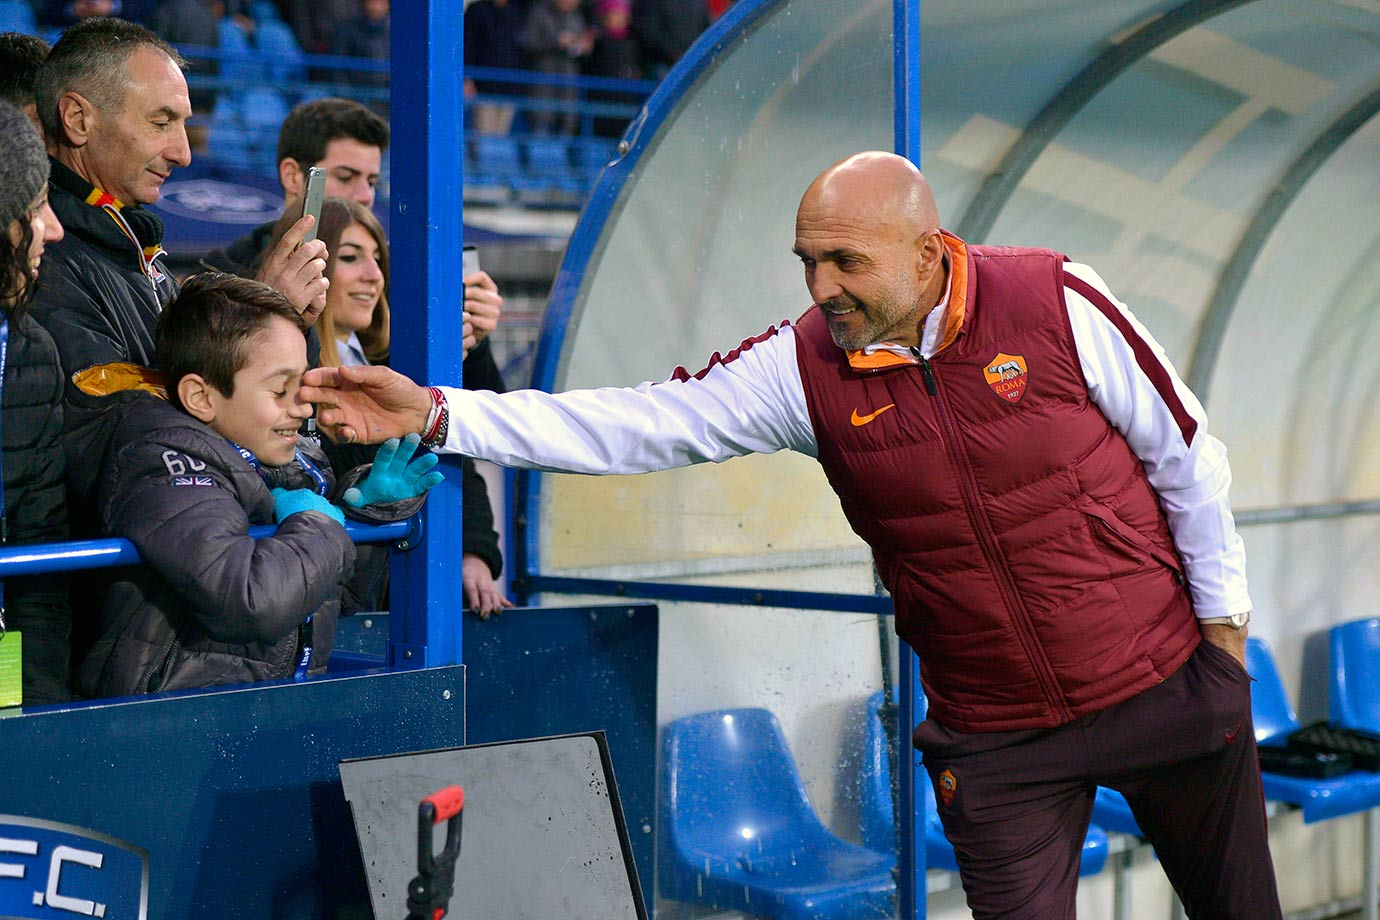 AS Roma head coach Luciano Spalletti jokes with a child before the Serie A match against Empoli FC in Empoli, Italy.